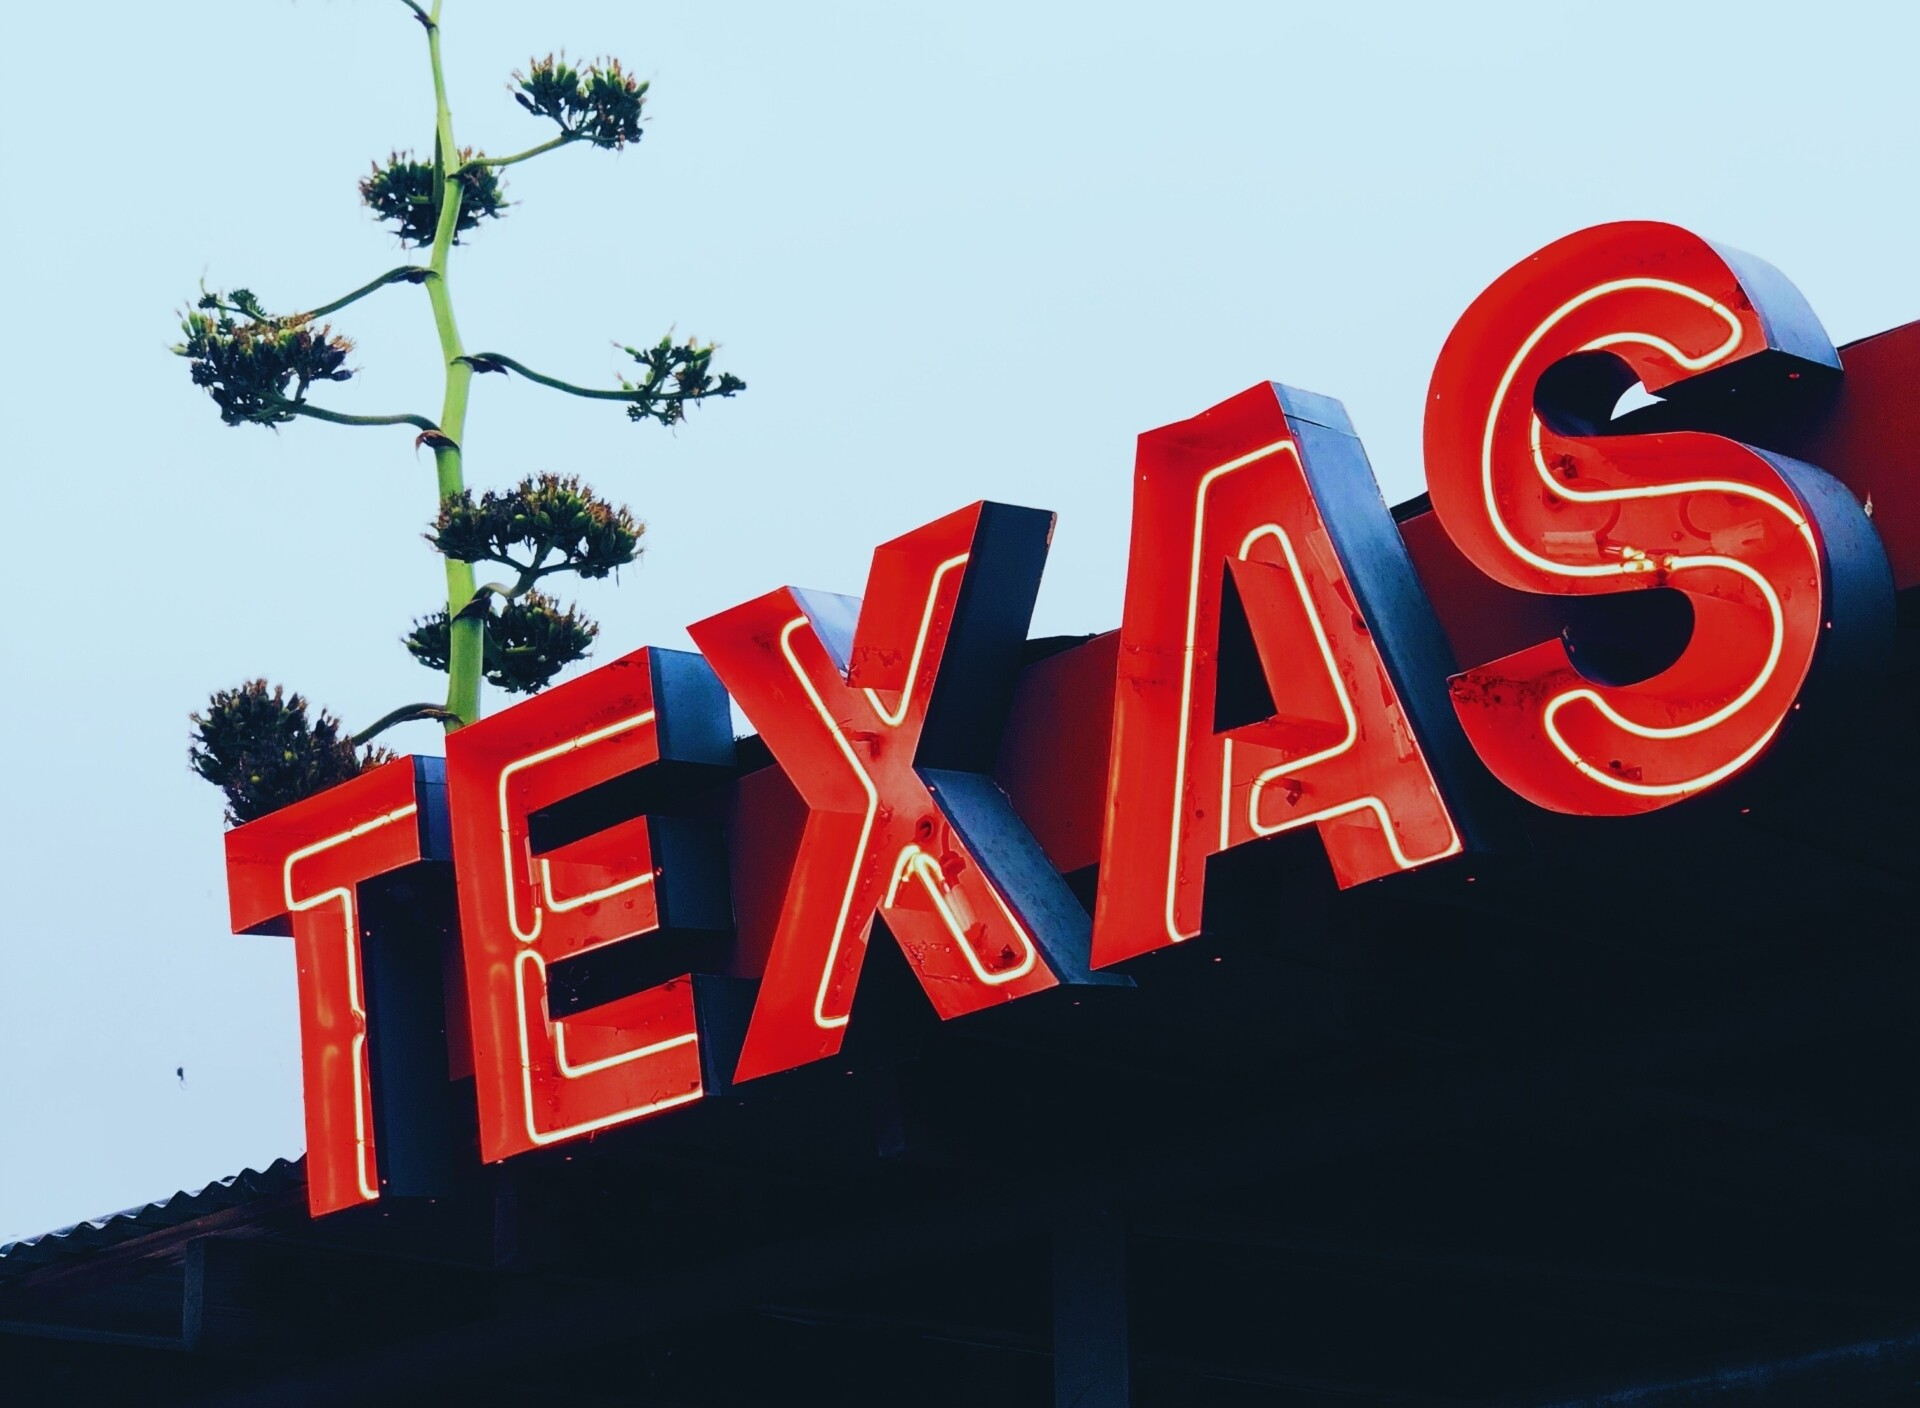 20 Best Places to Visit in Texas